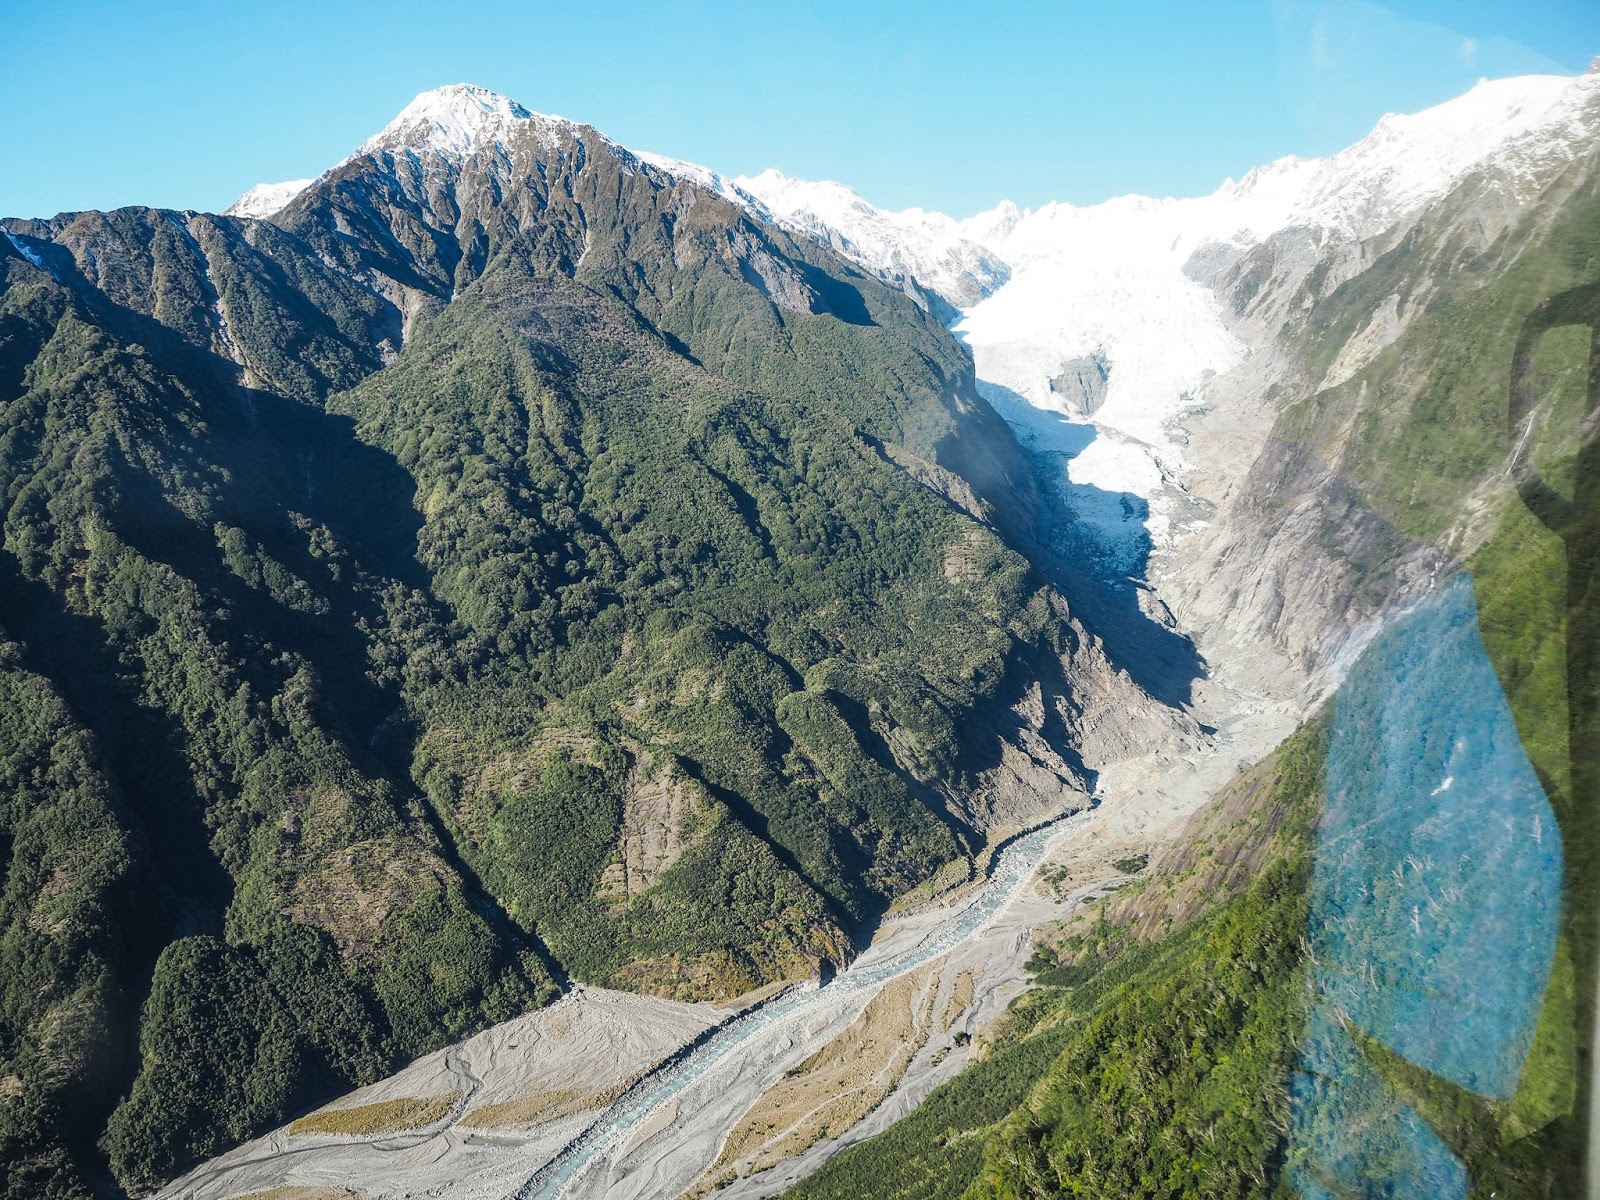 Franz Josef glacier from the air